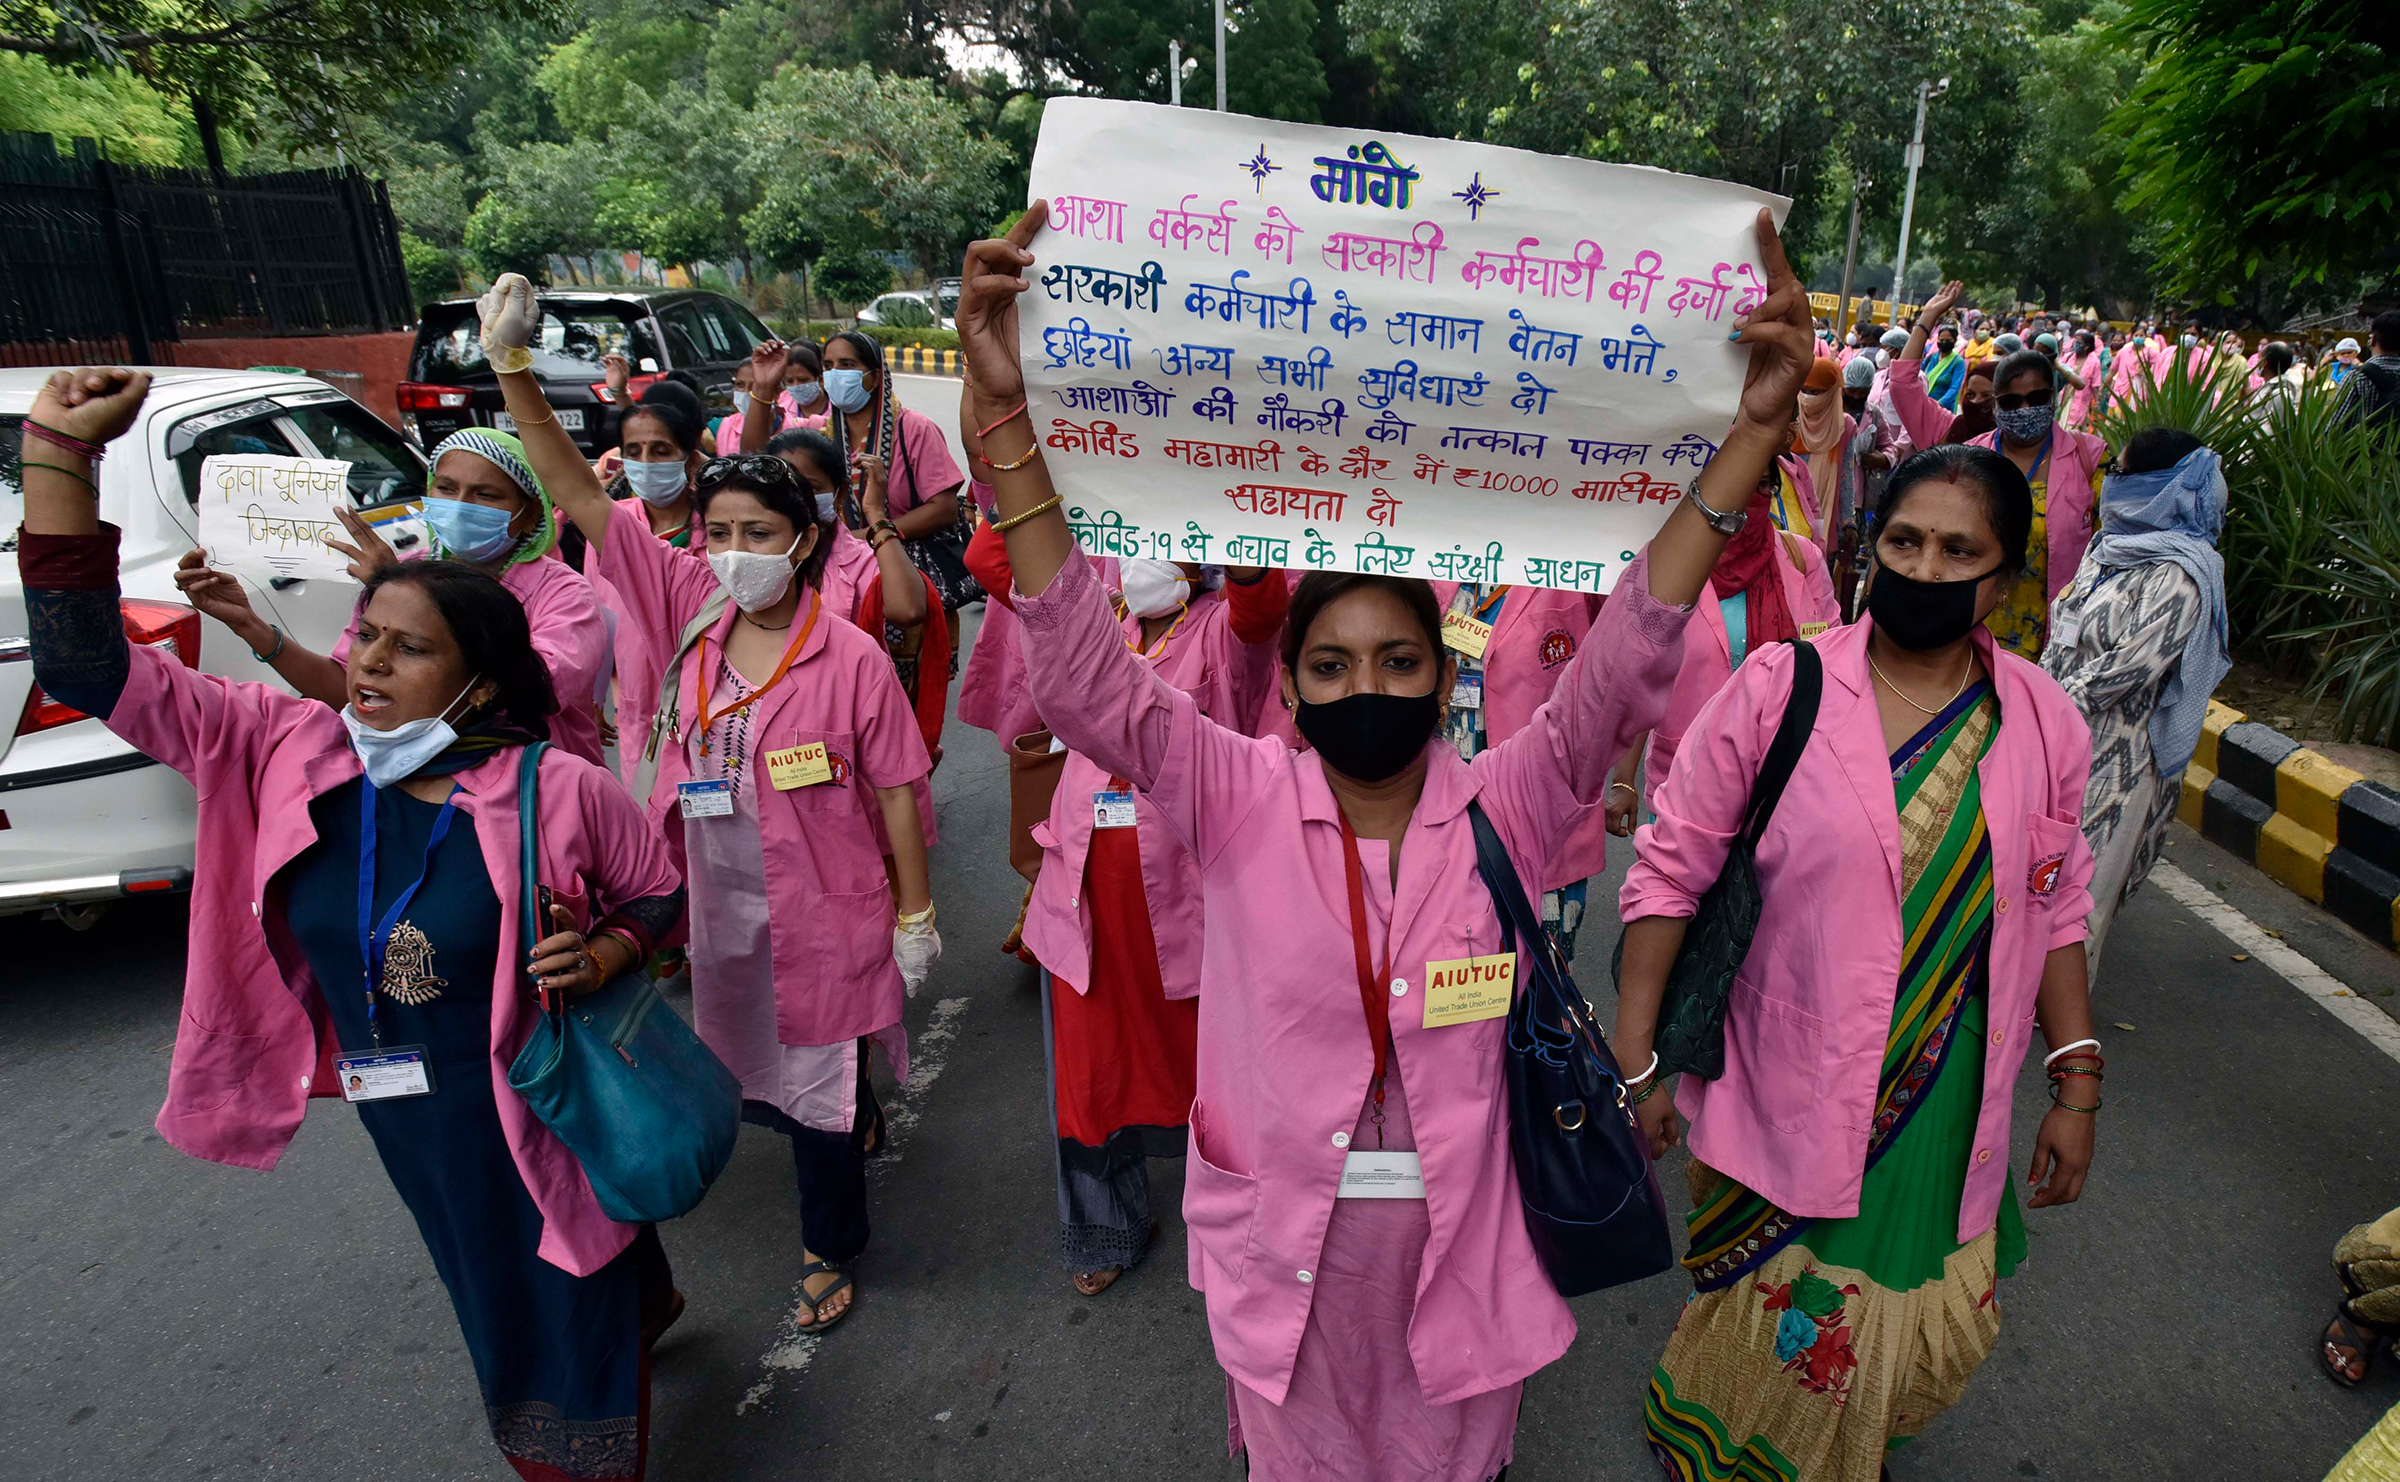 Accredited Social Health Activist (ASHA) workers protest against alleged negligence of their workforce by the government on August 9, 2020 in New Delhi. During the protest, ASHA workers demanded payment for their work during the COVID-19 pandemic, saying they have not been paid for the past few months.